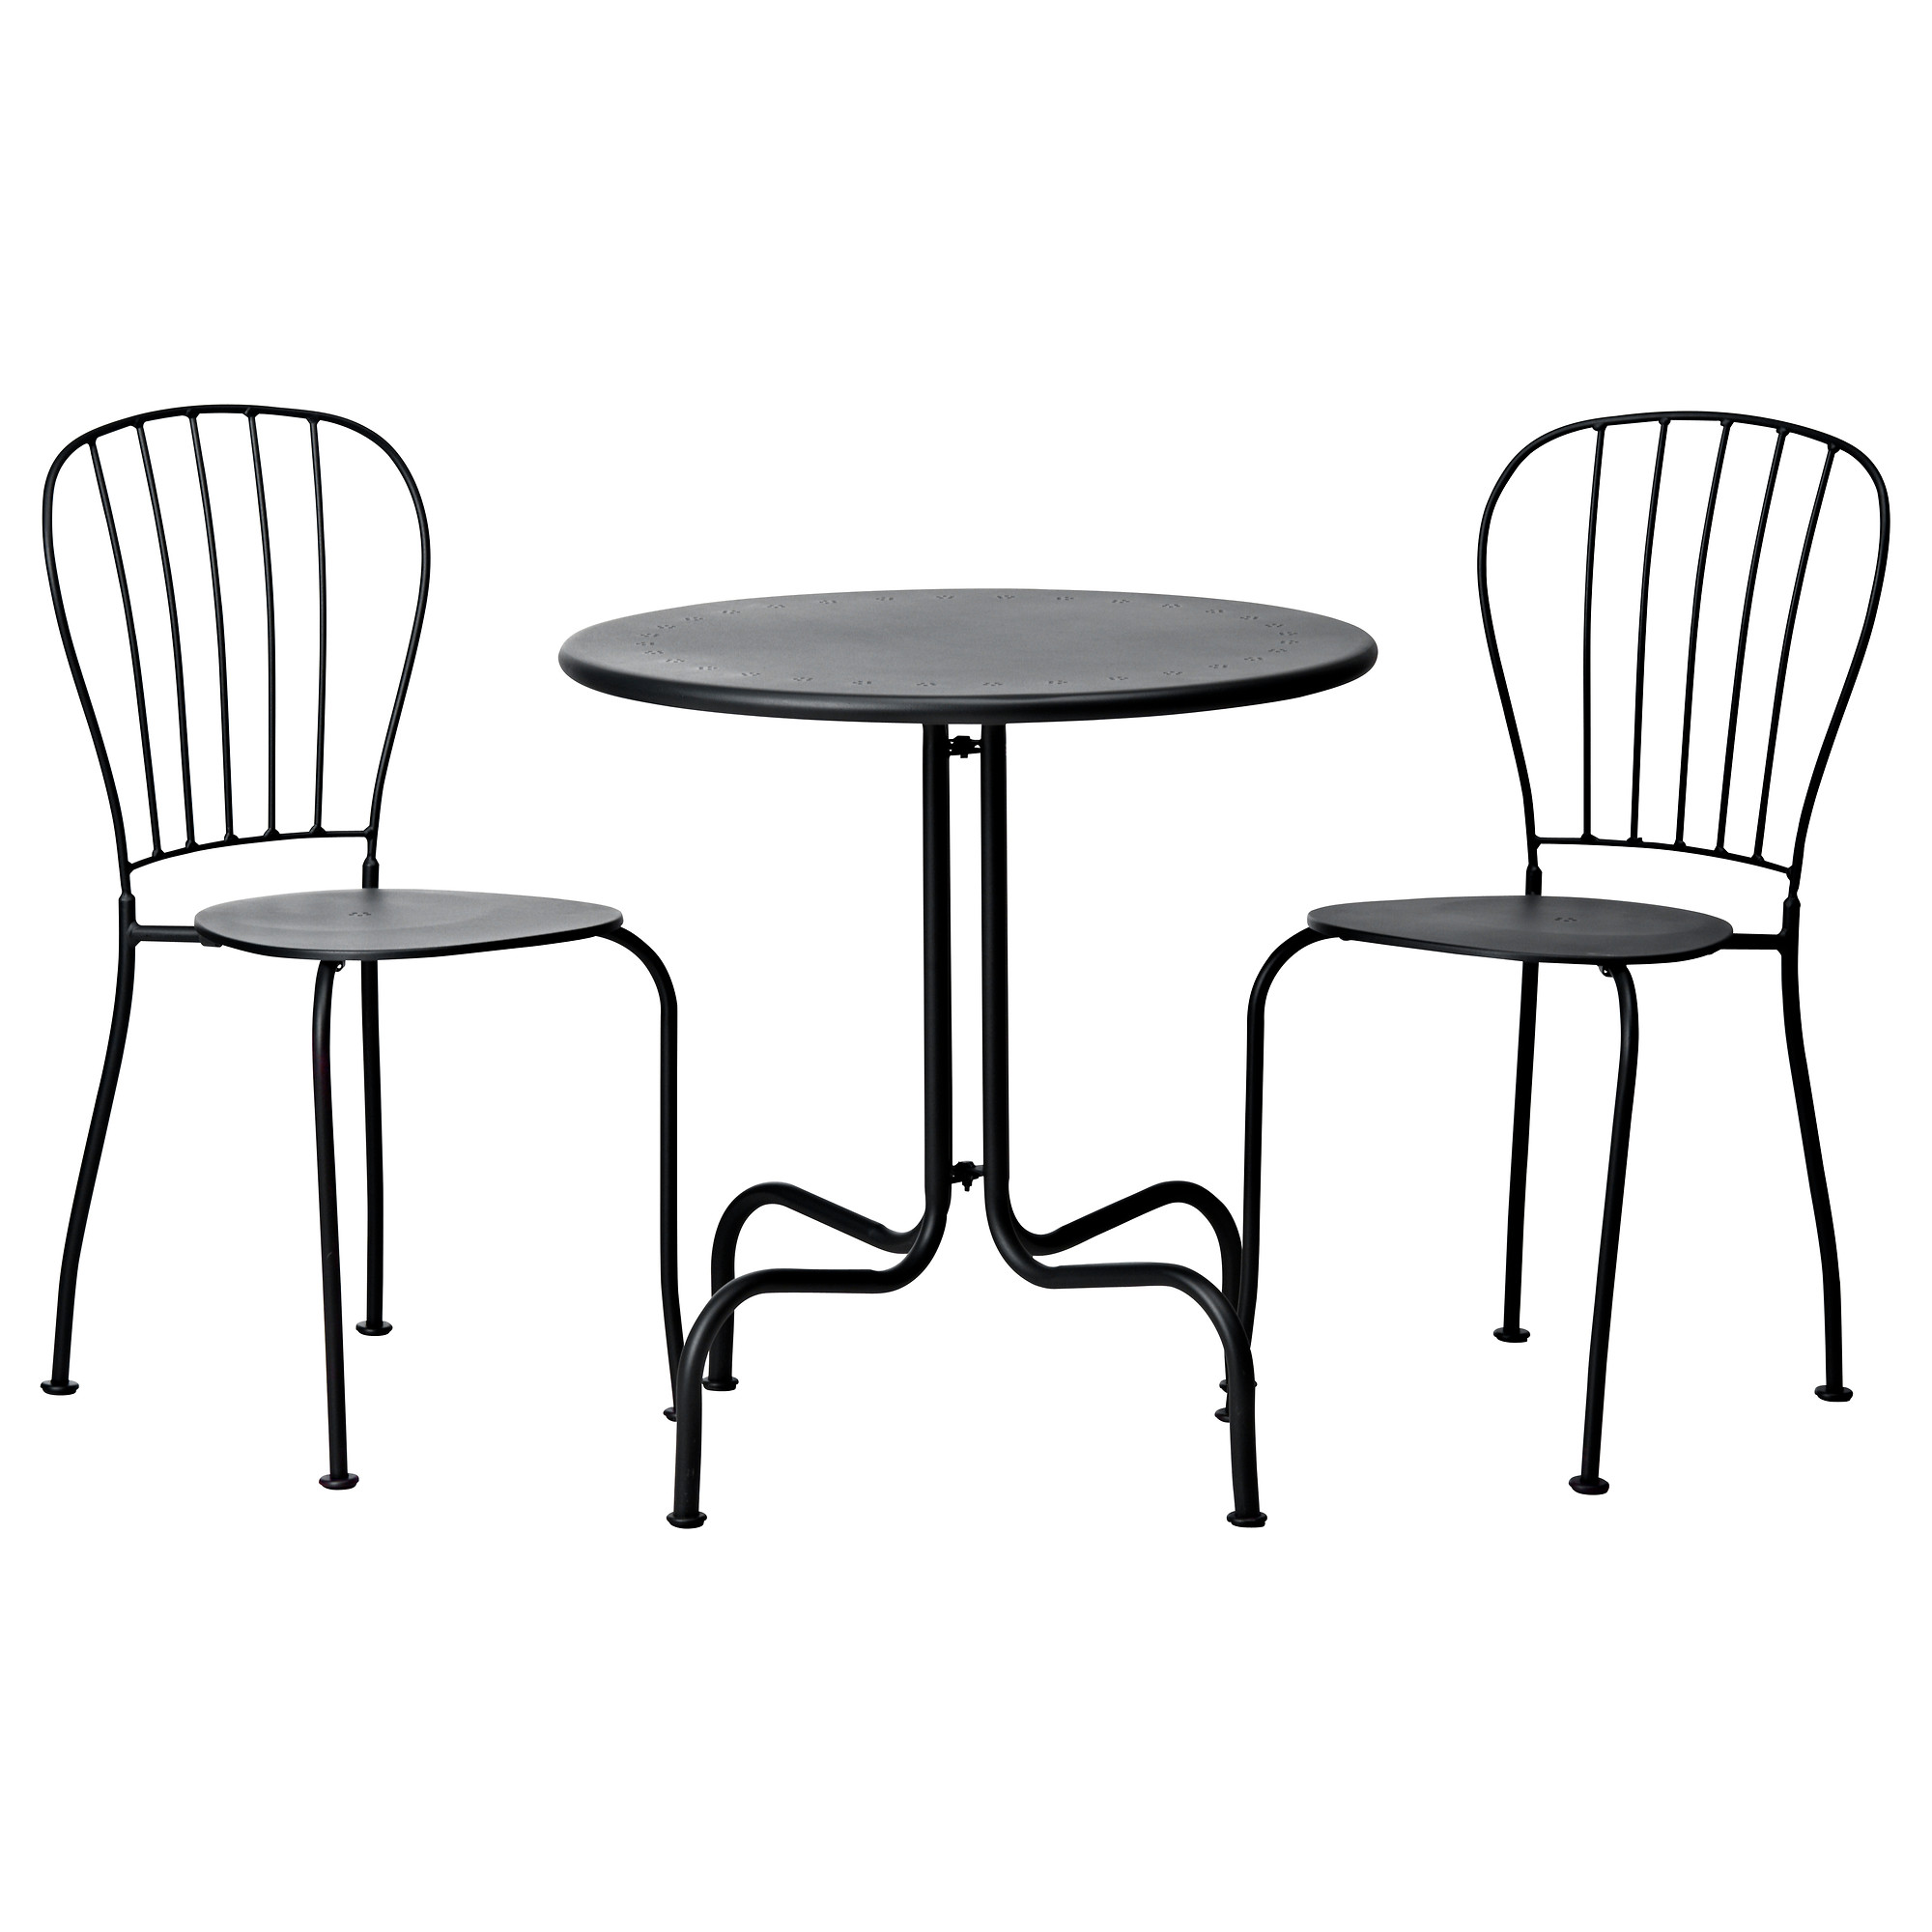 great stunning ikea bistro set consisting of two pretty metal chair and a round table in black. Black Bedroom Furniture Sets. Home Design Ideas